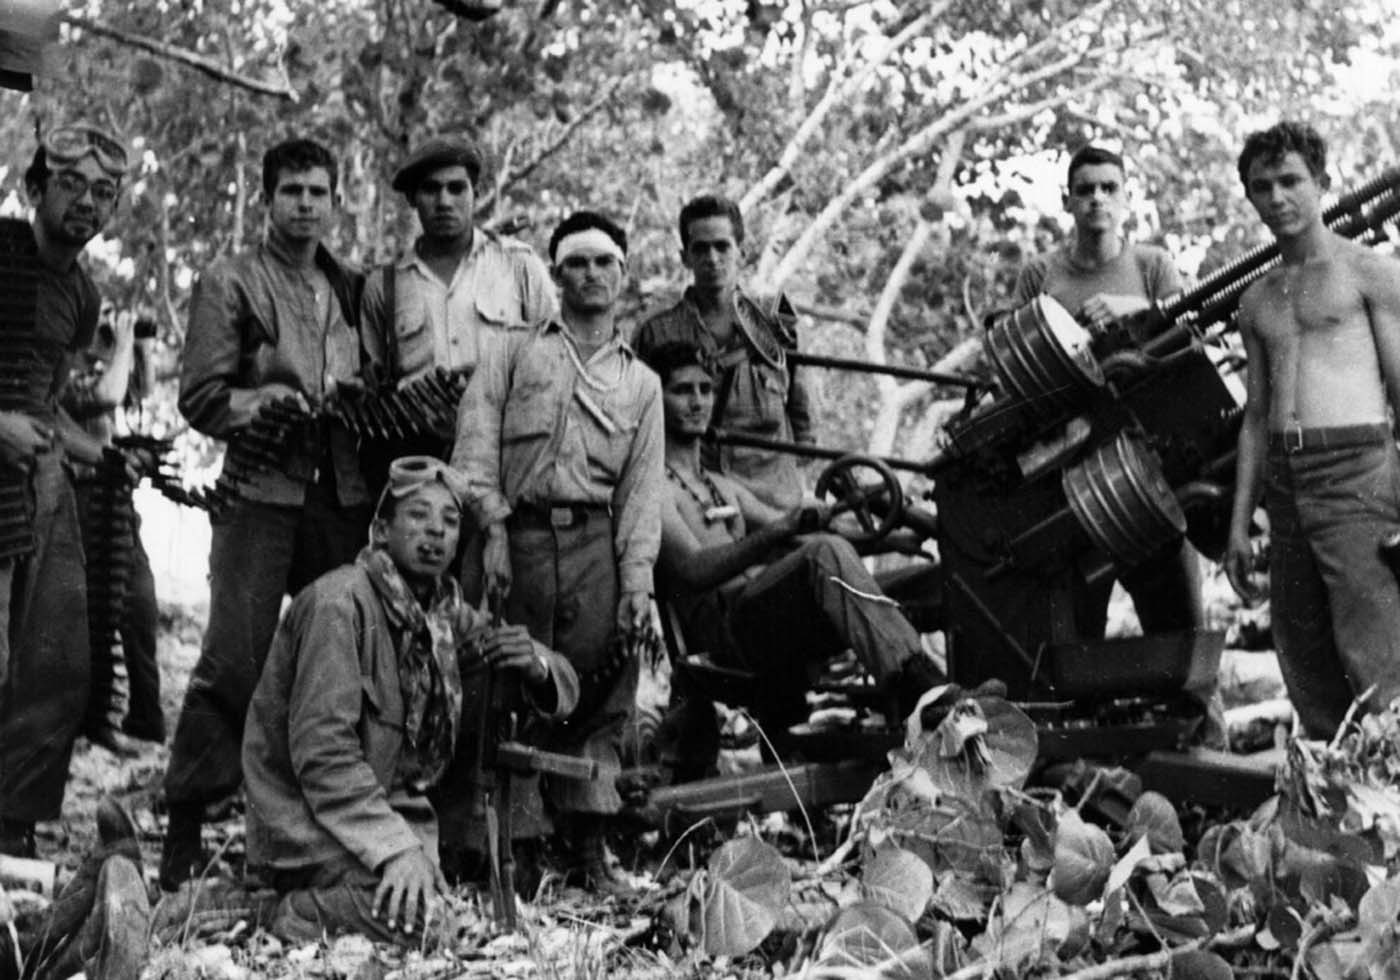 How was Bay of Pigs not considered an act of war?